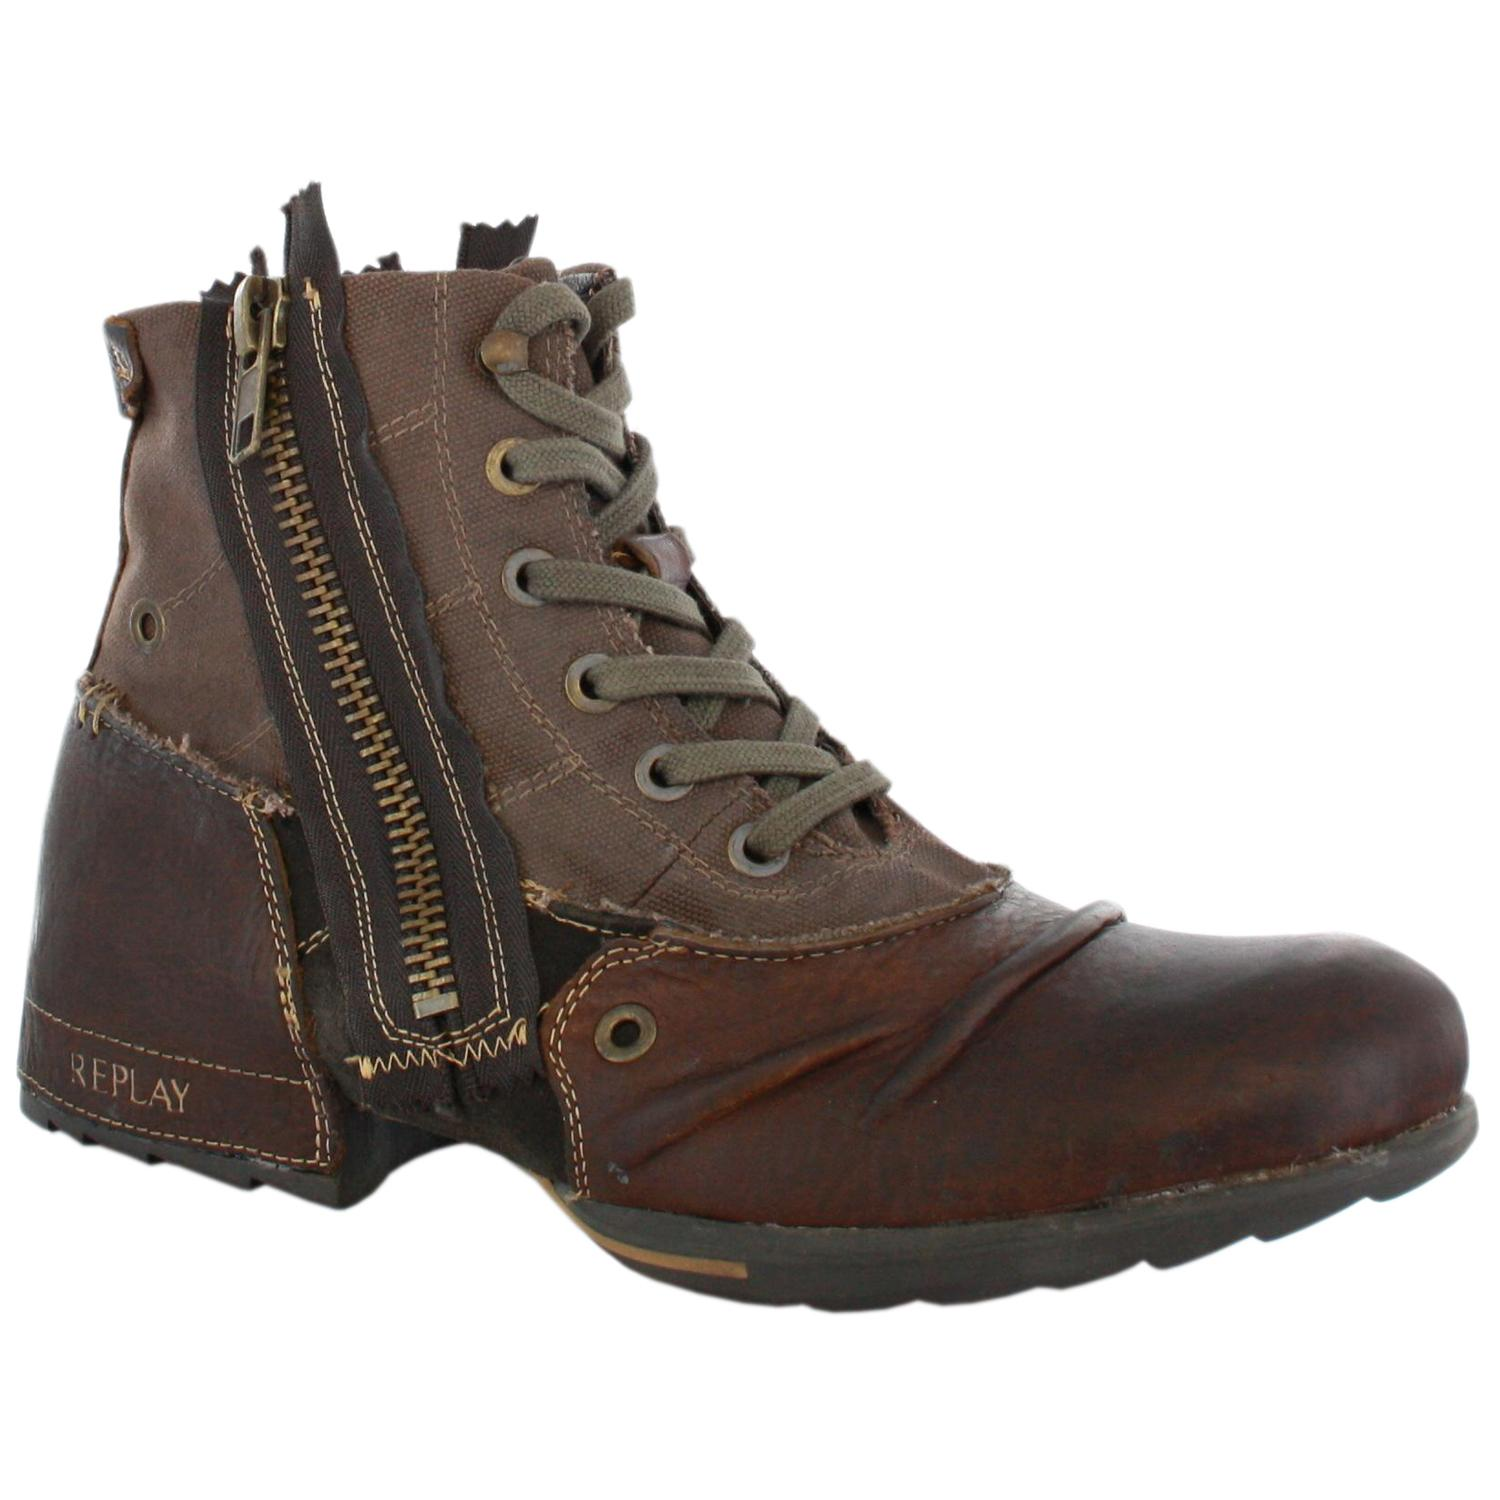 replay clutch brown mens leather zip boots shoes ebay